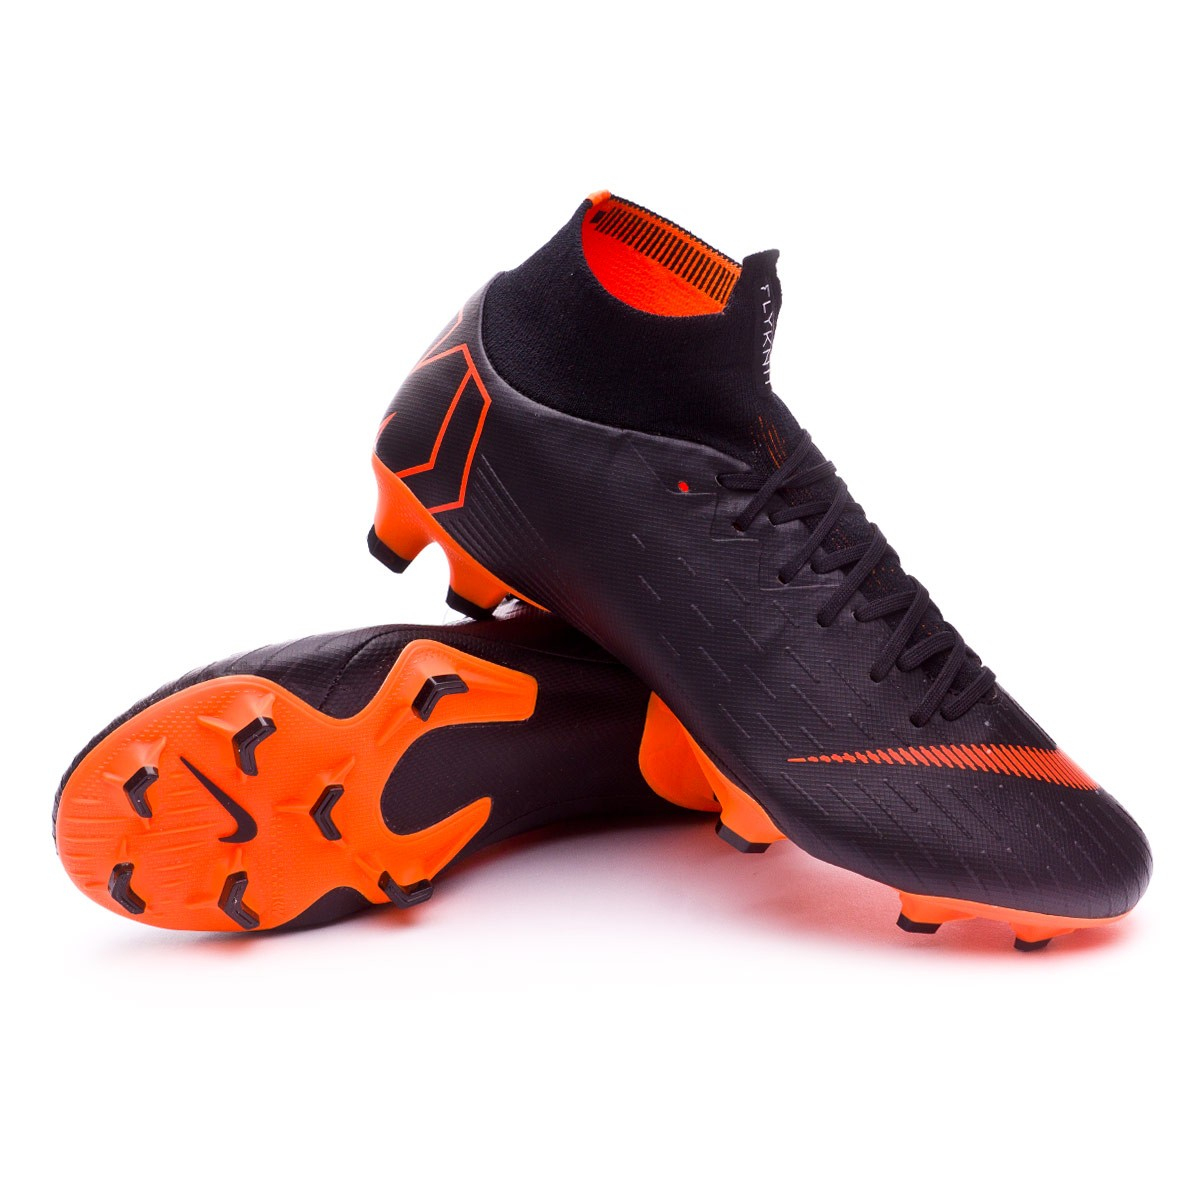 d060e908f2f5 Football Boots Nike Mercurial Superfly VI Pro FG Black-Total orange ...